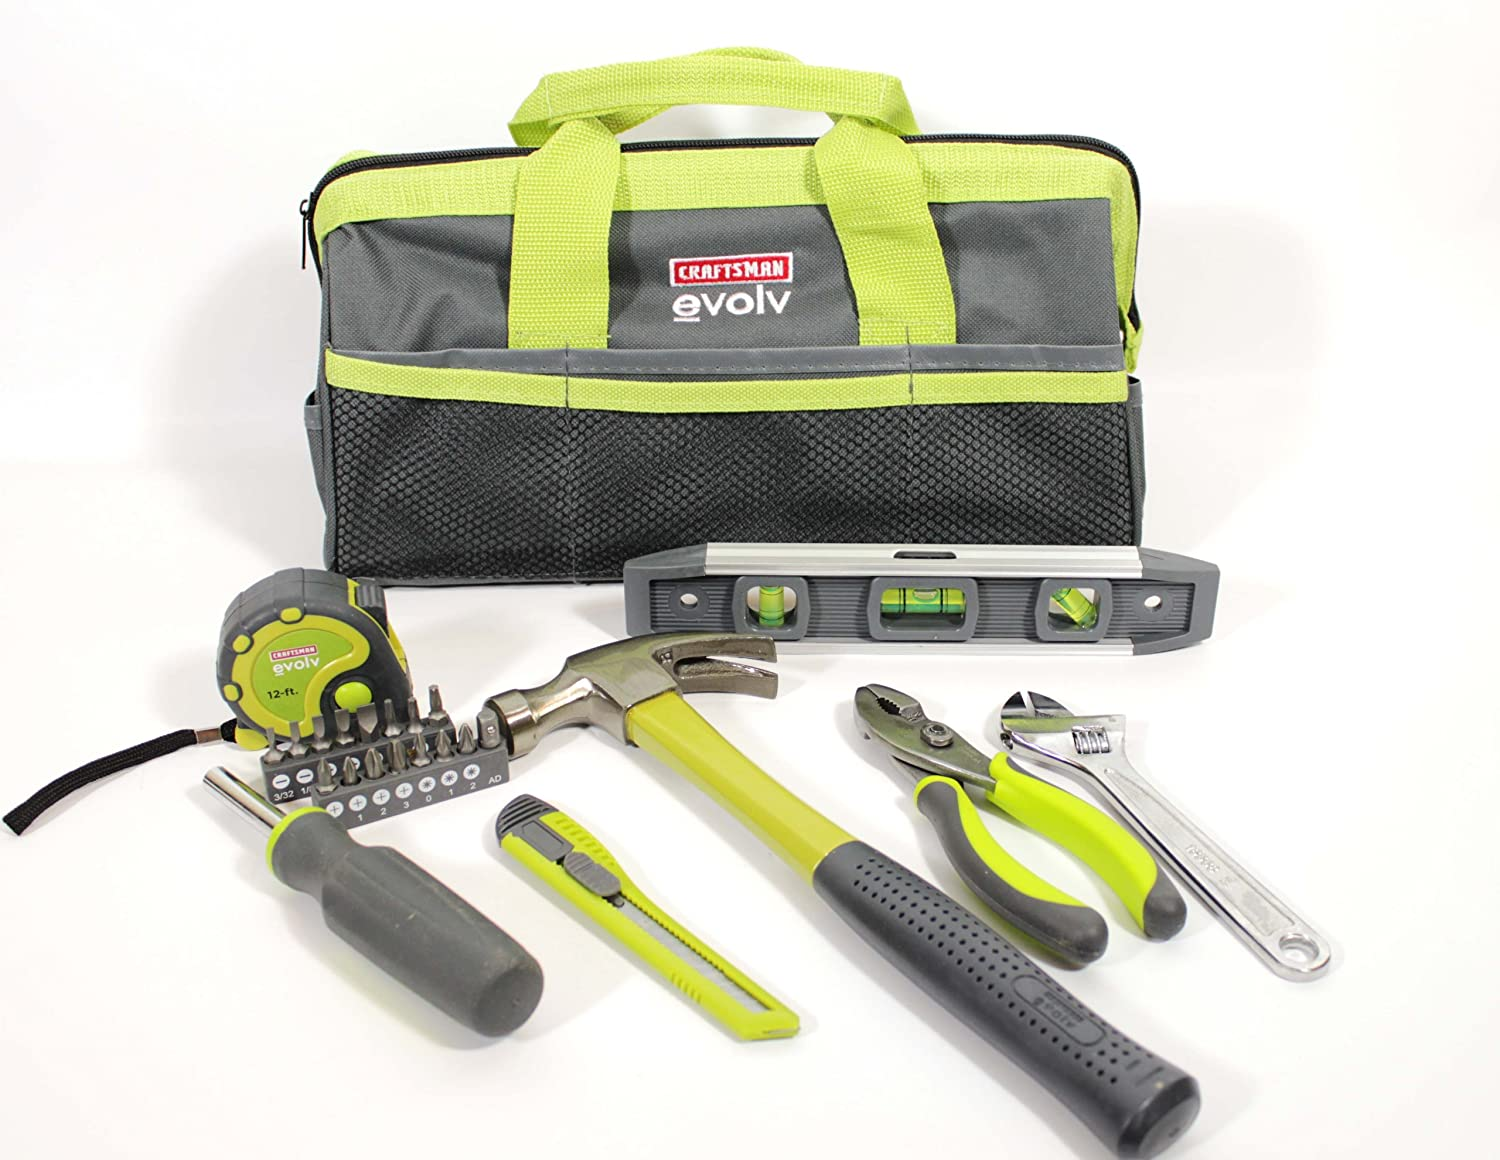 Repair household tools kit set bag storage hand tool 23 piece home hammer wrench ebay - Household tools ...